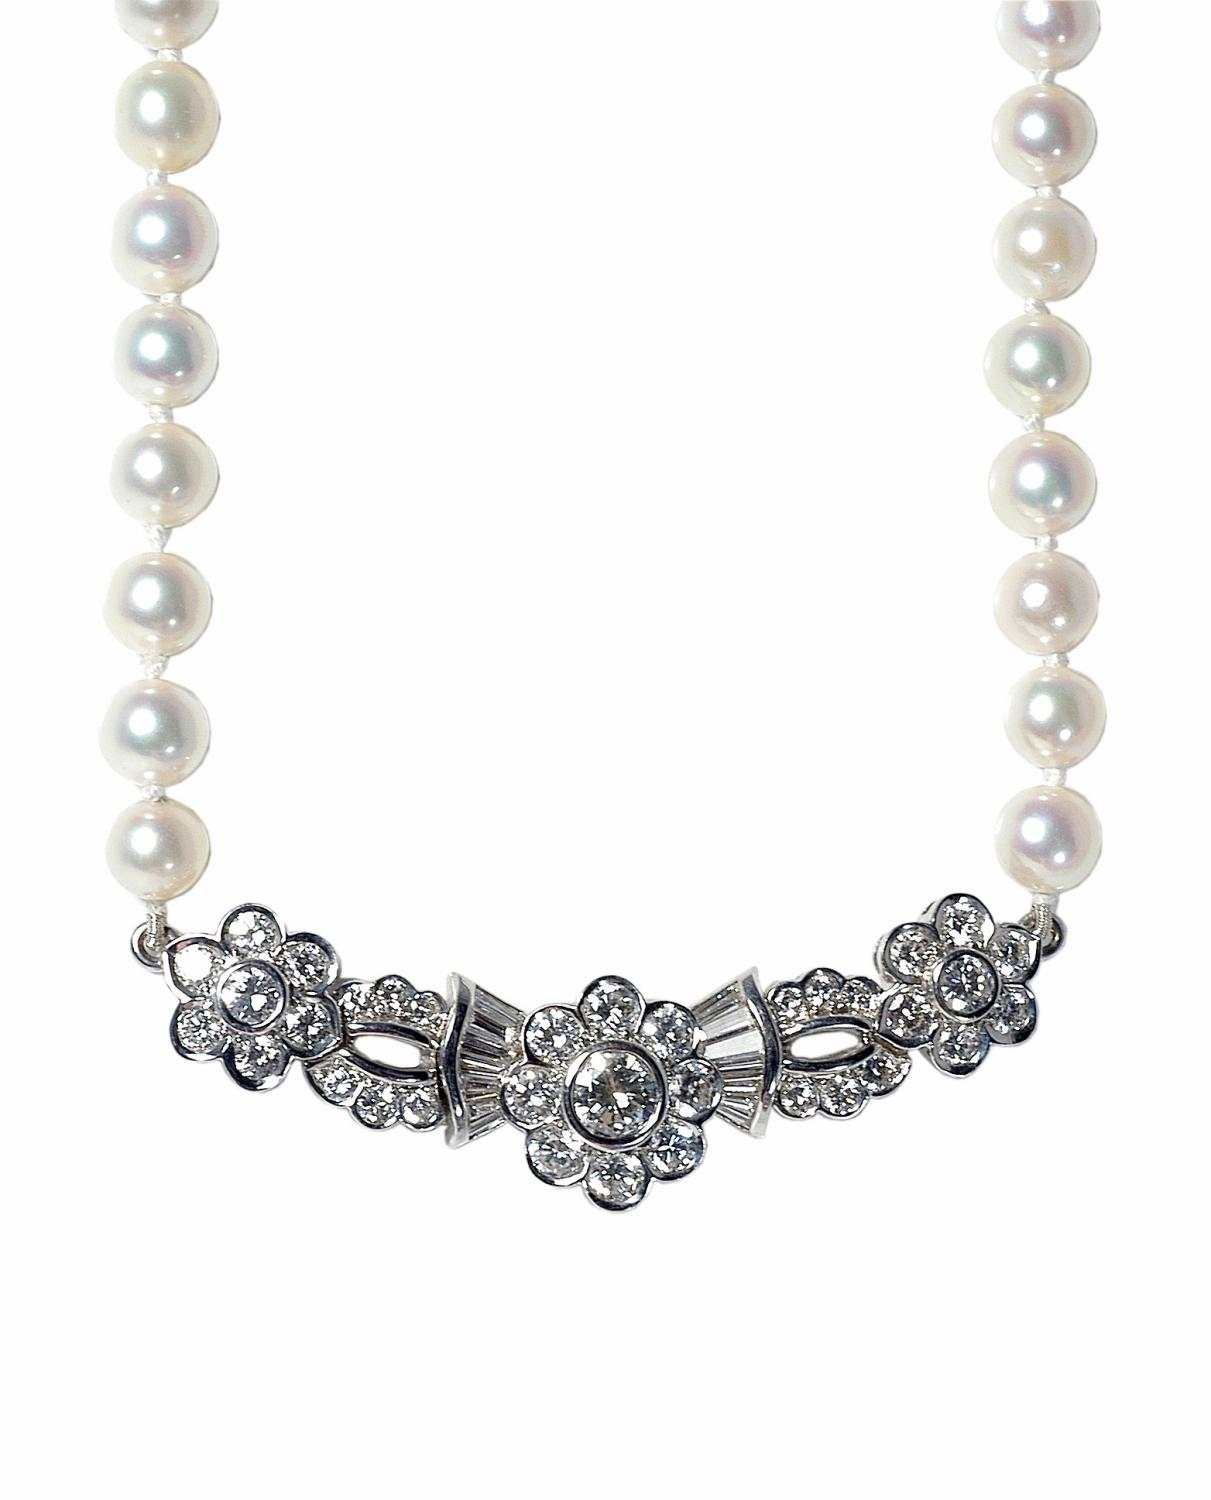 Diamond and Cultured Pearl Necklace